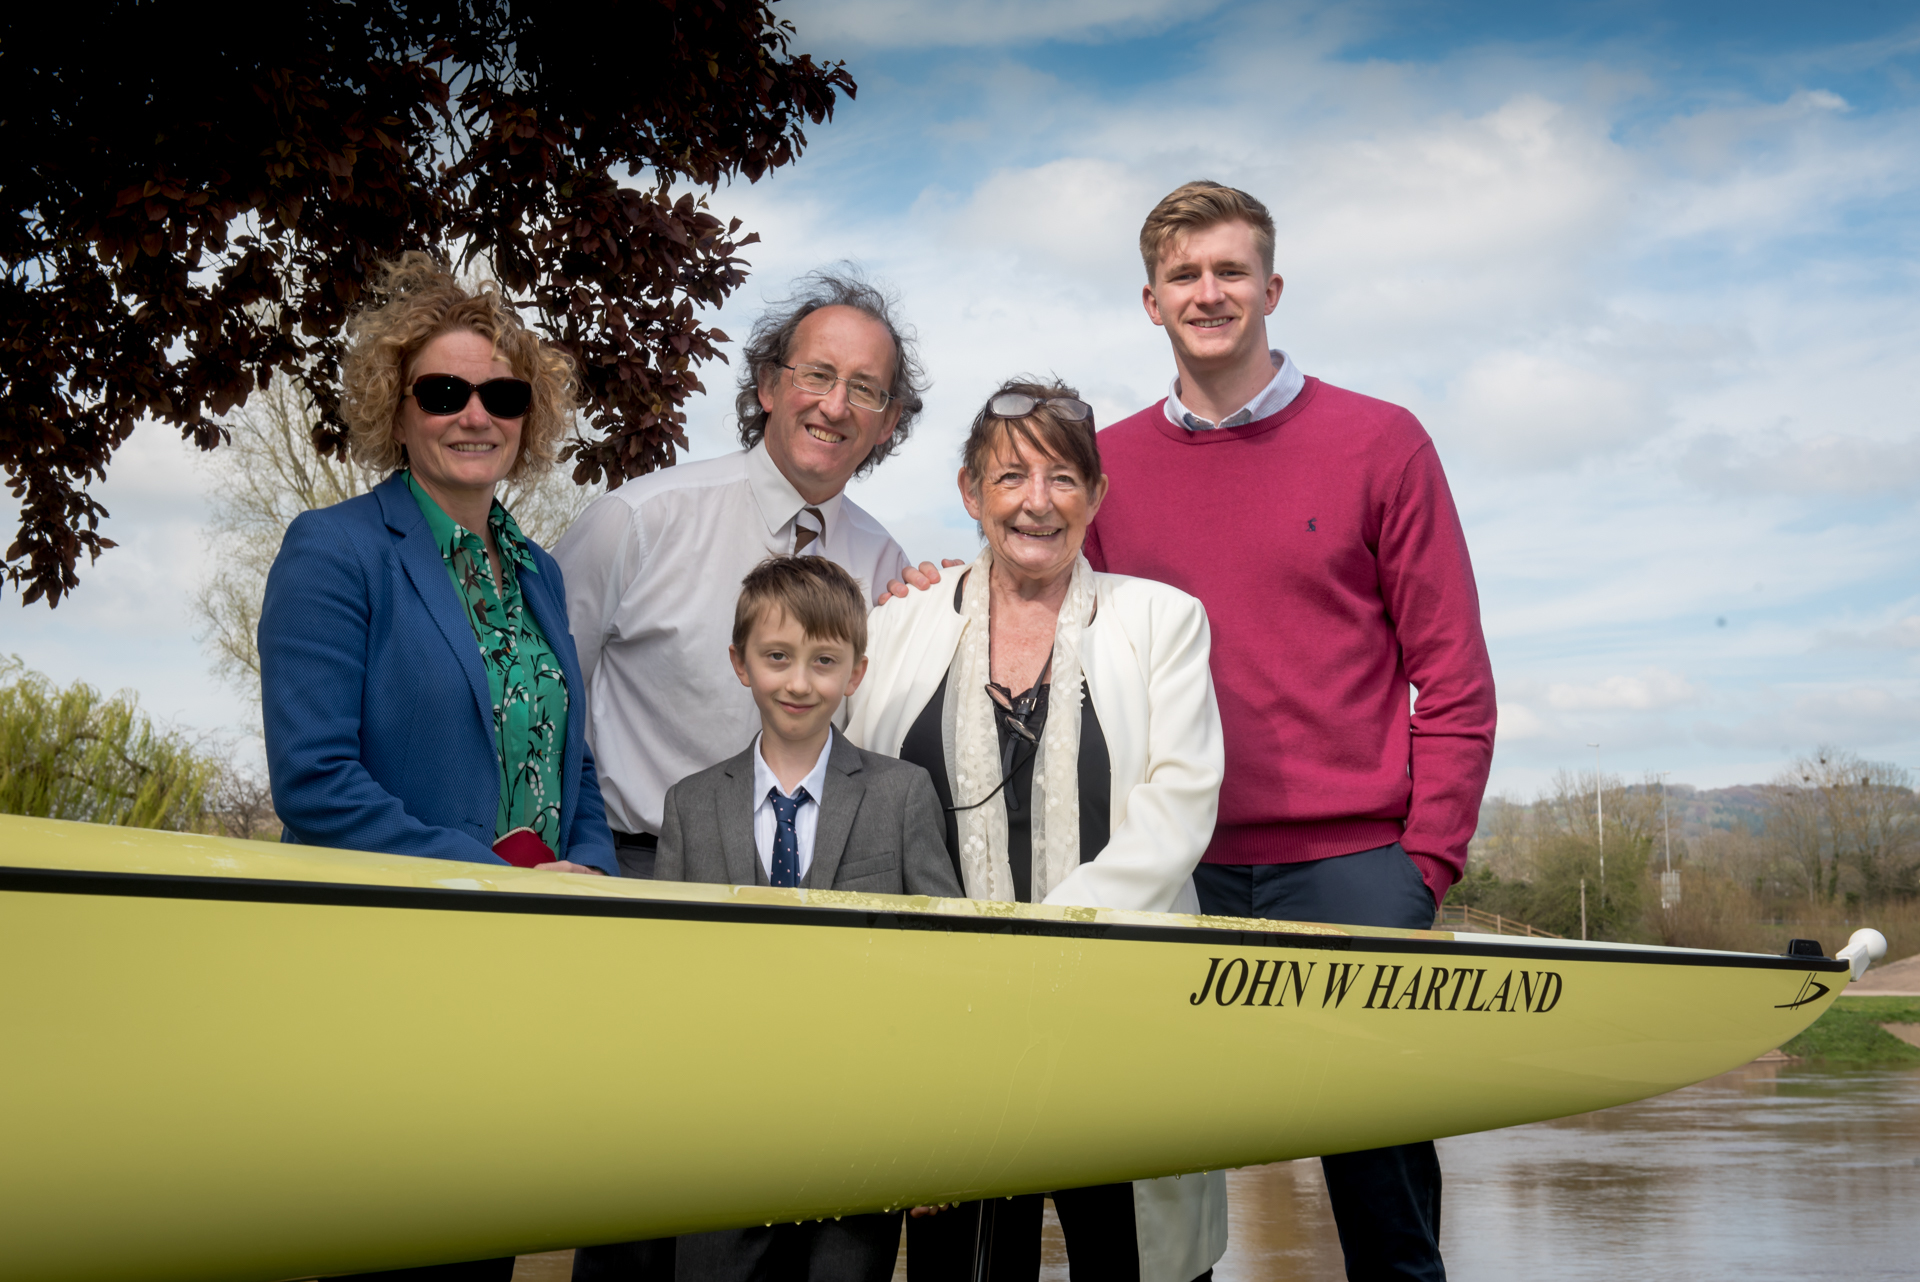 School in Monmouth unveils new boat named for Commonwealth coach John Hartland